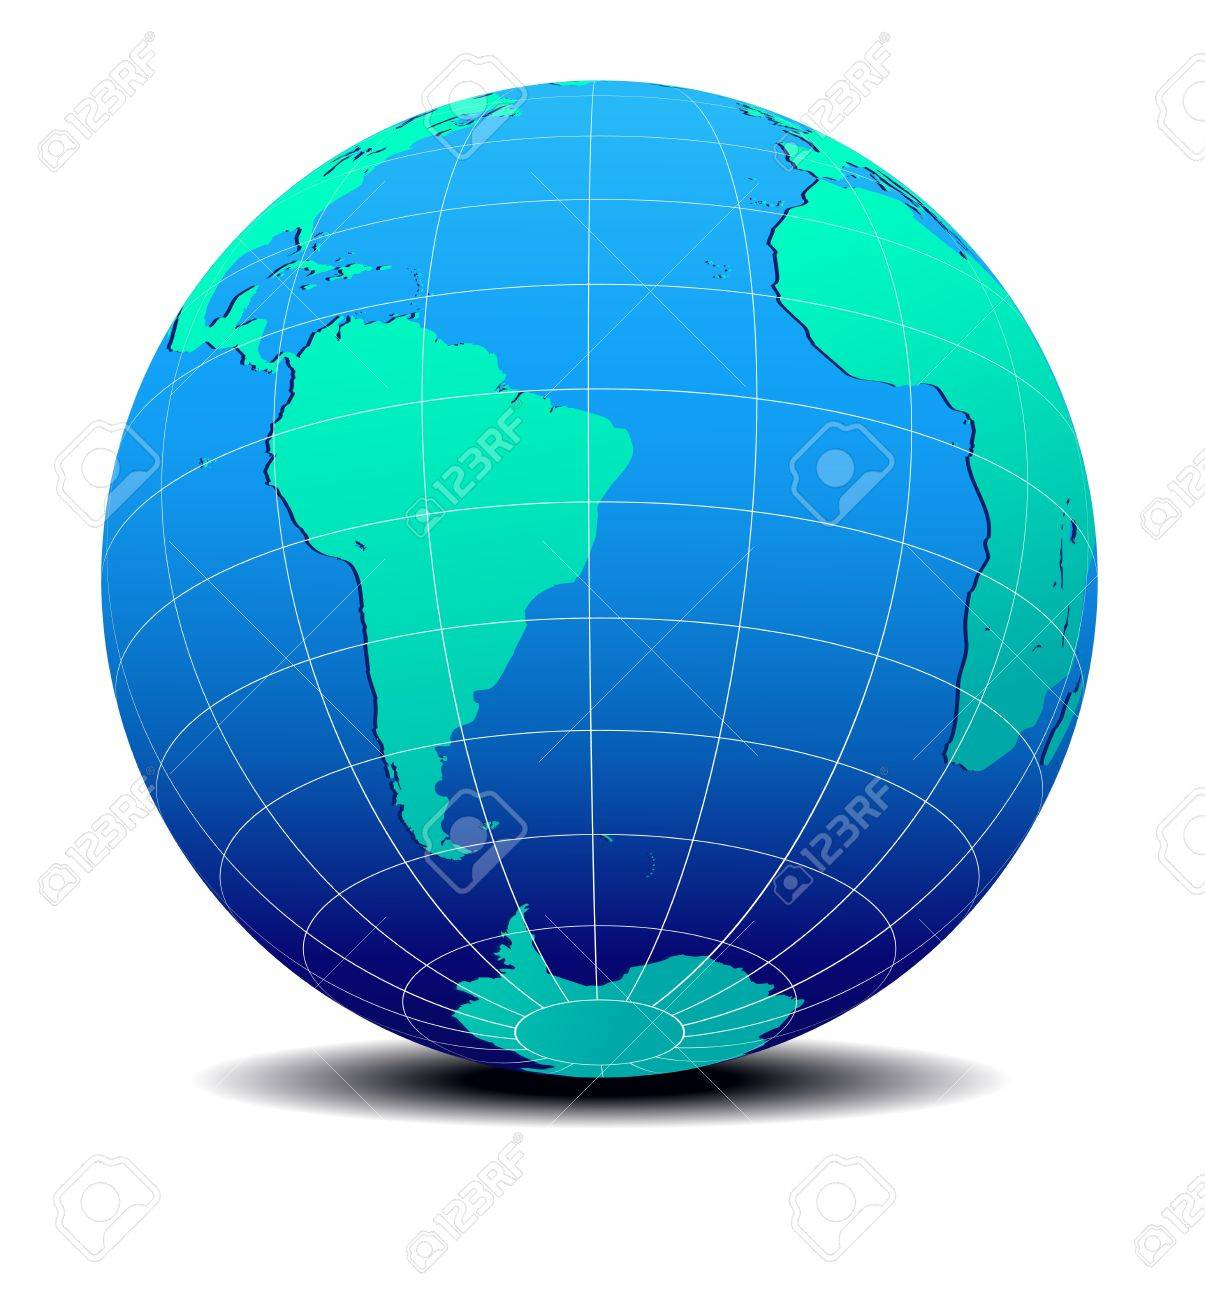 South america and africa global world map royalty free cliparts south america and africa global world map stock vector 17540910 gumiabroncs Choice Image